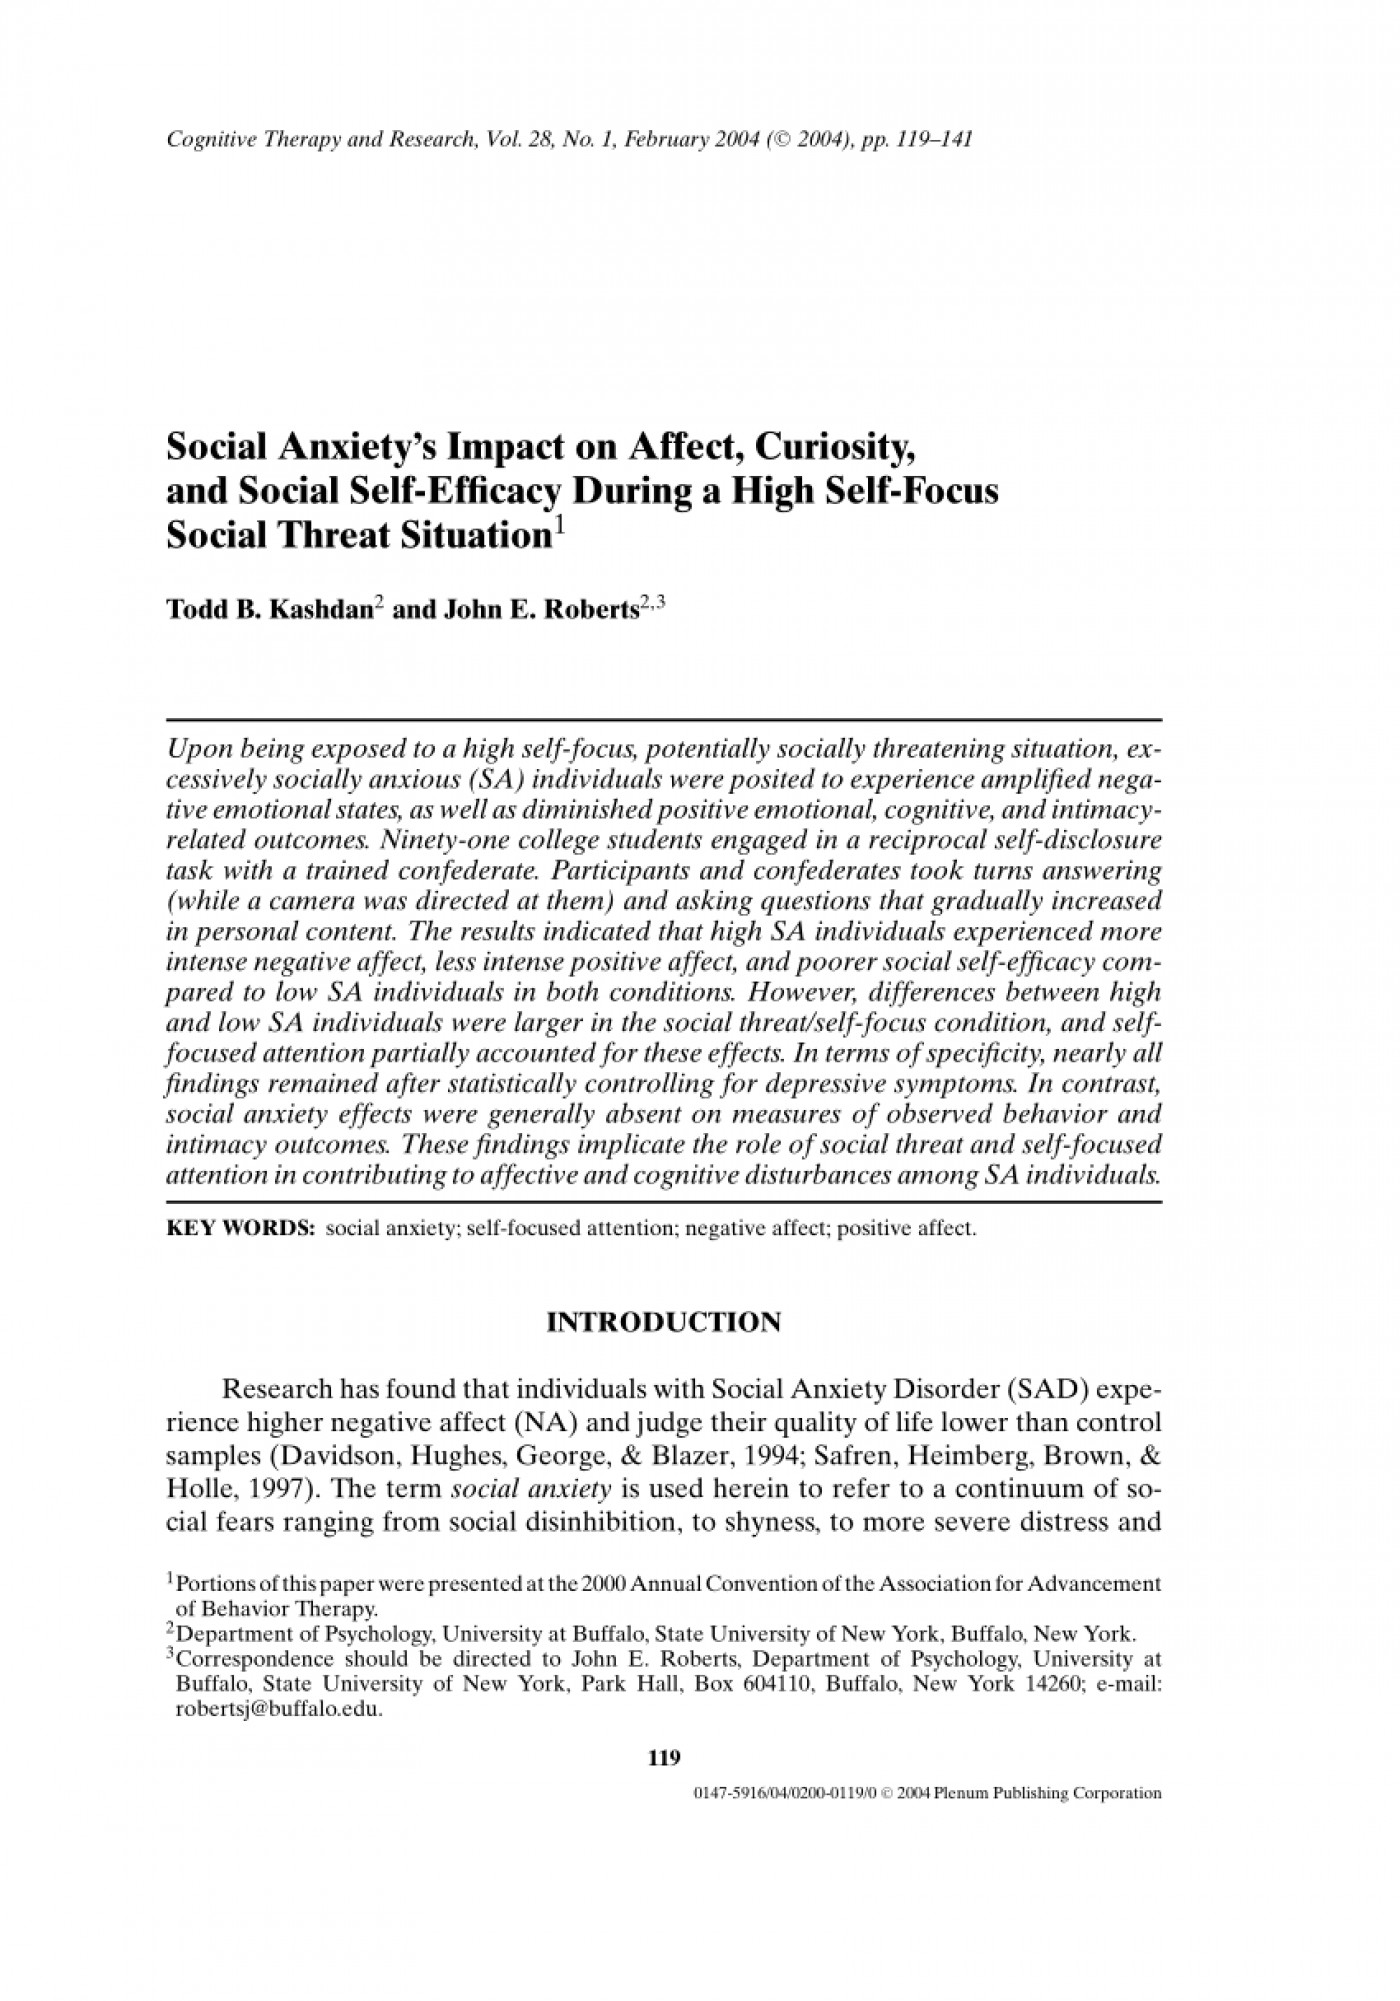 005 Research Paper Psychology On Social Anxiety Disorder Staggering 1400